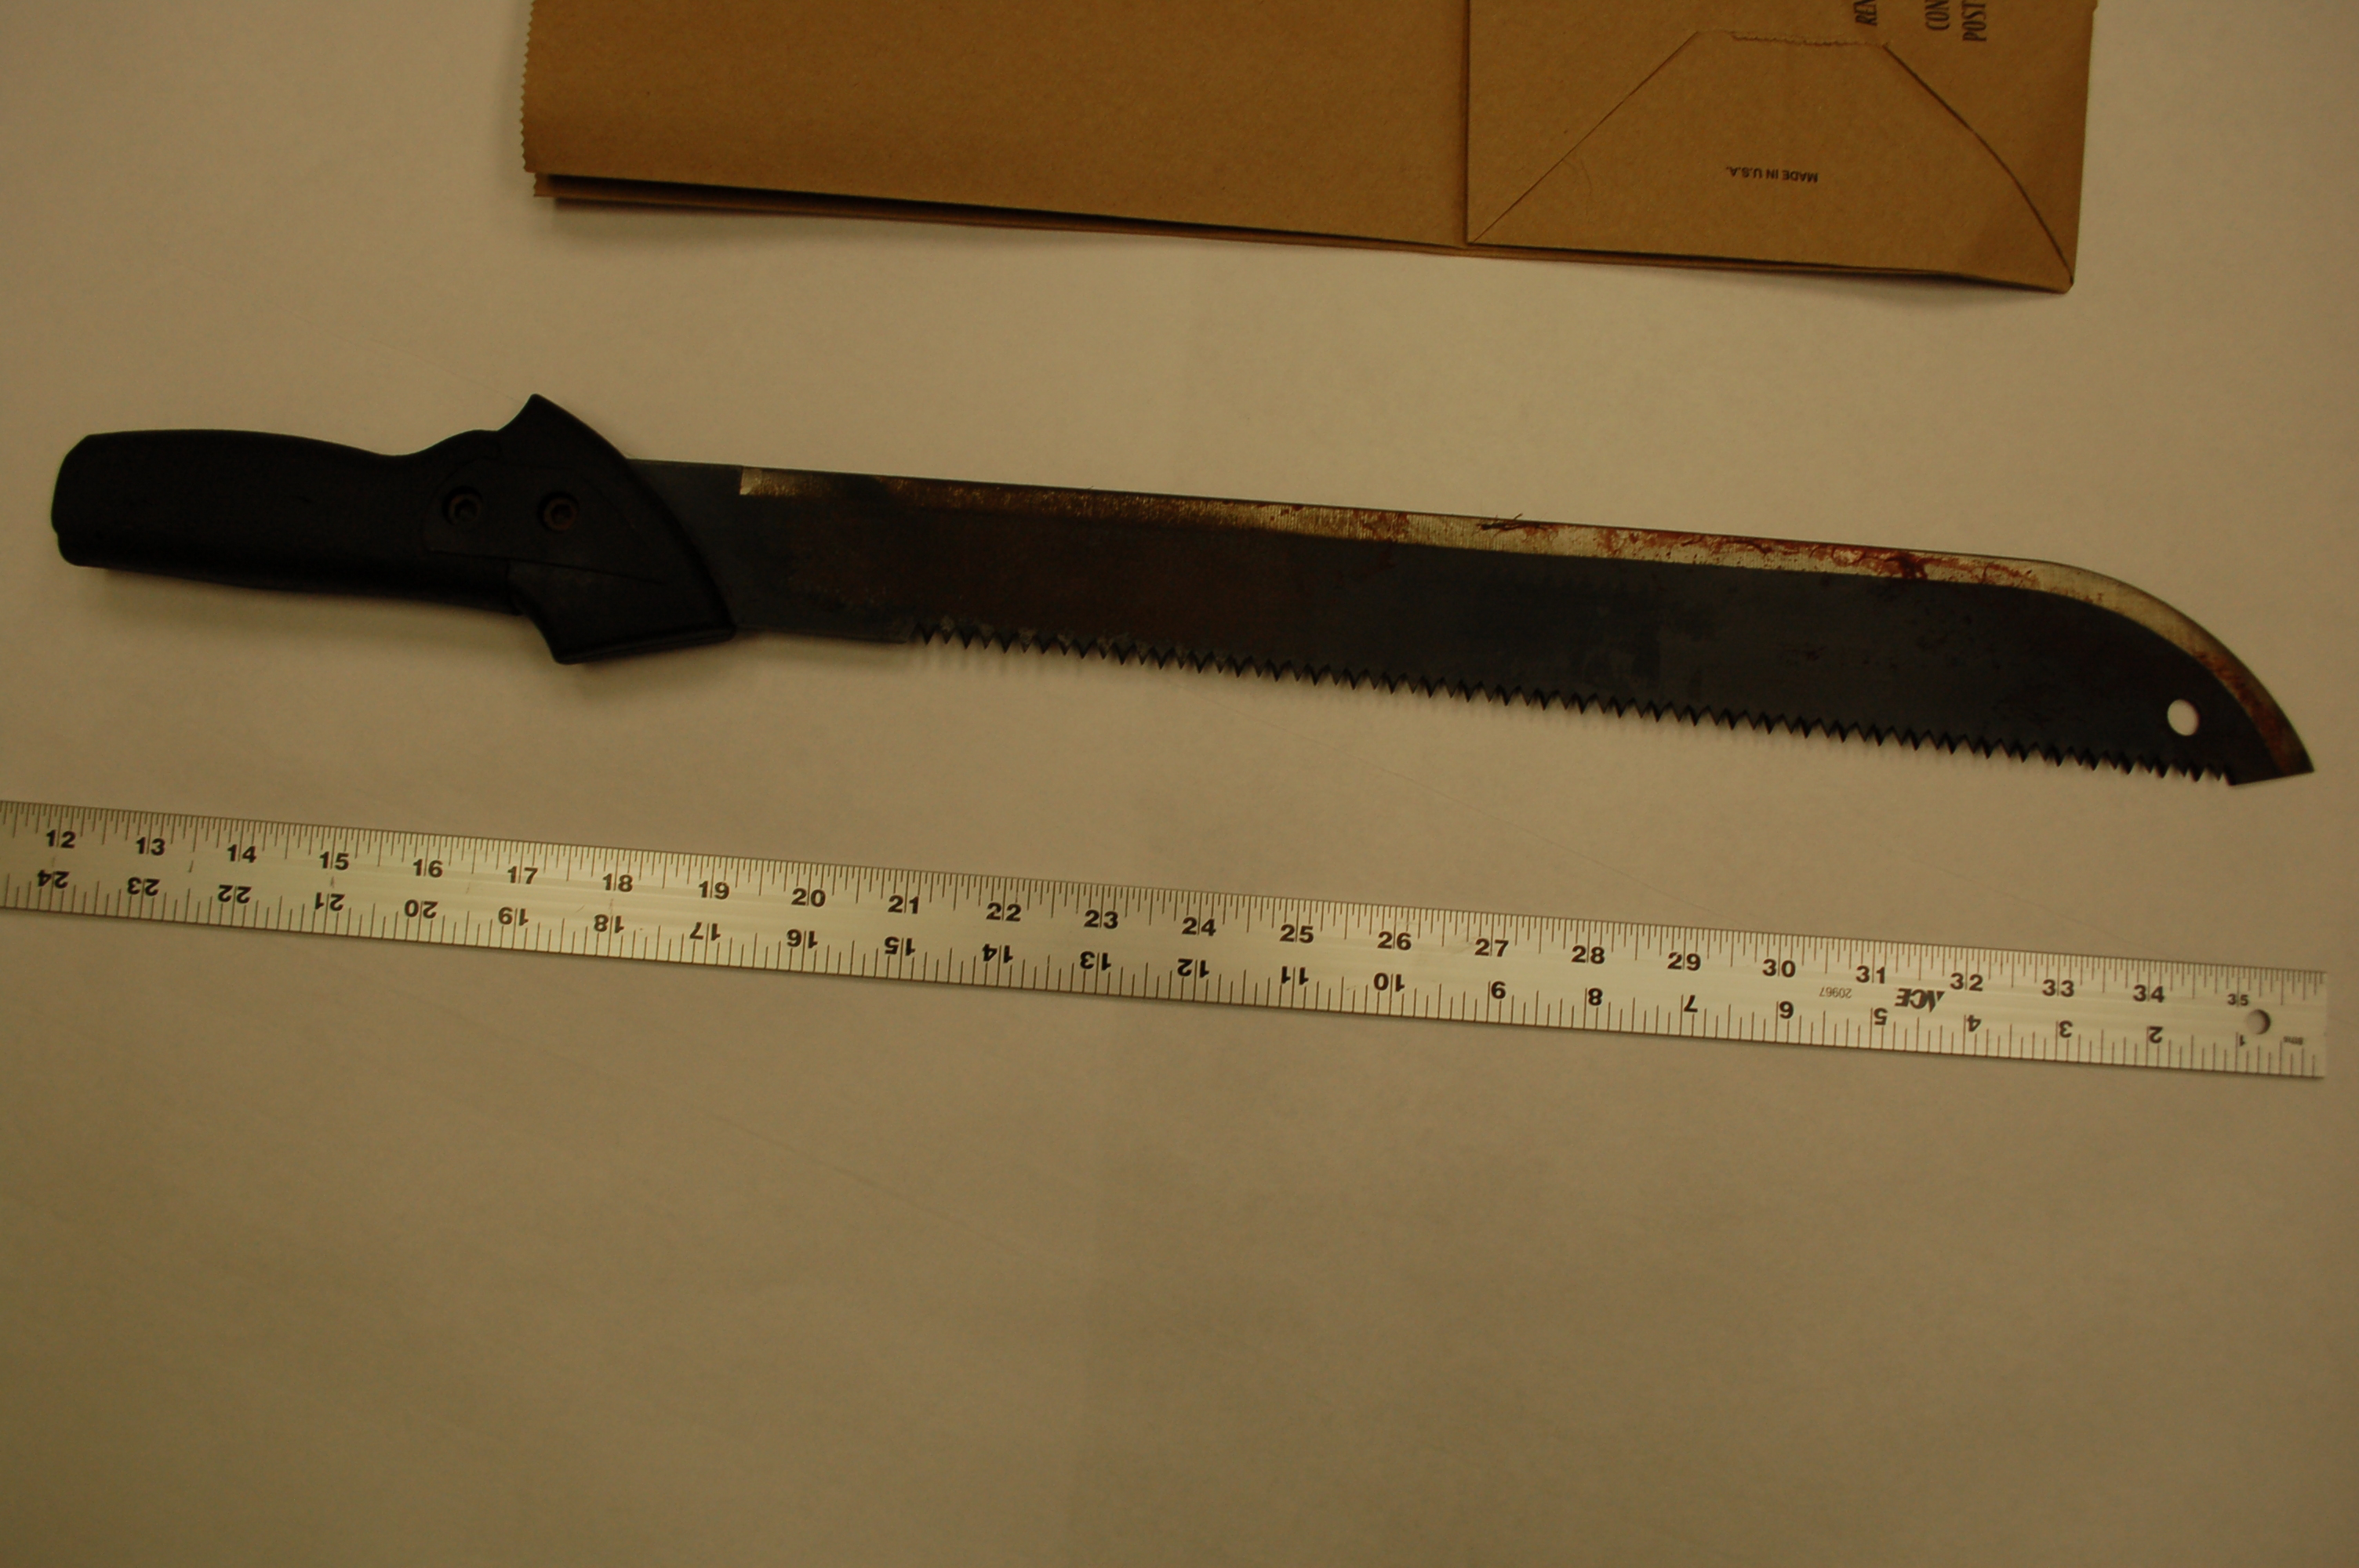 Machete Murder Case: Weapon believed to have been used during the crime